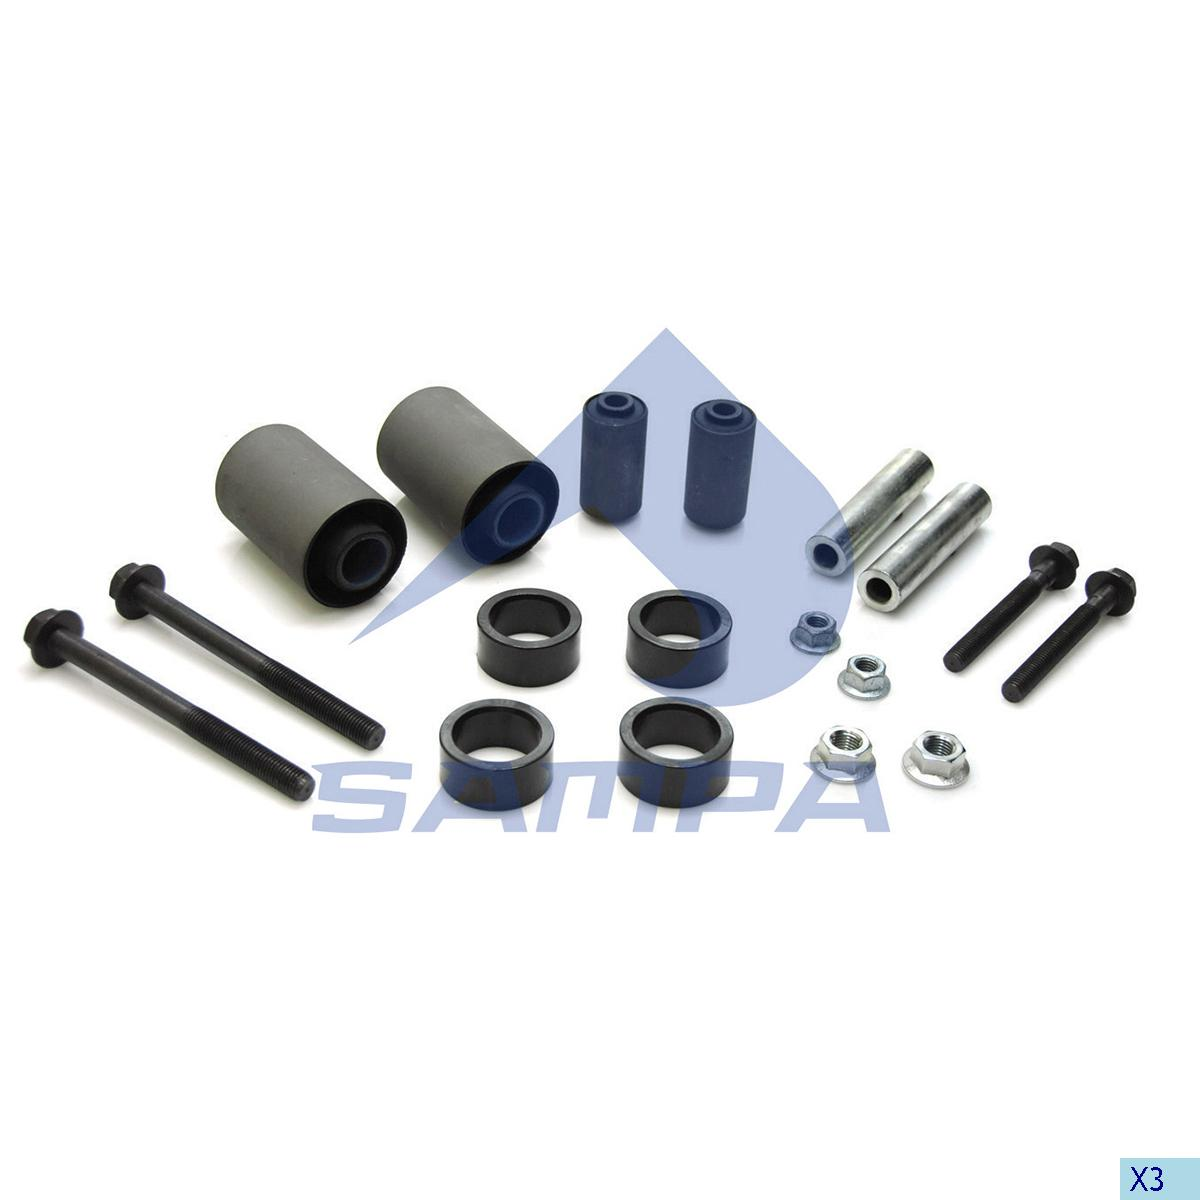 Repair Kit, Cab, Daf, Cab